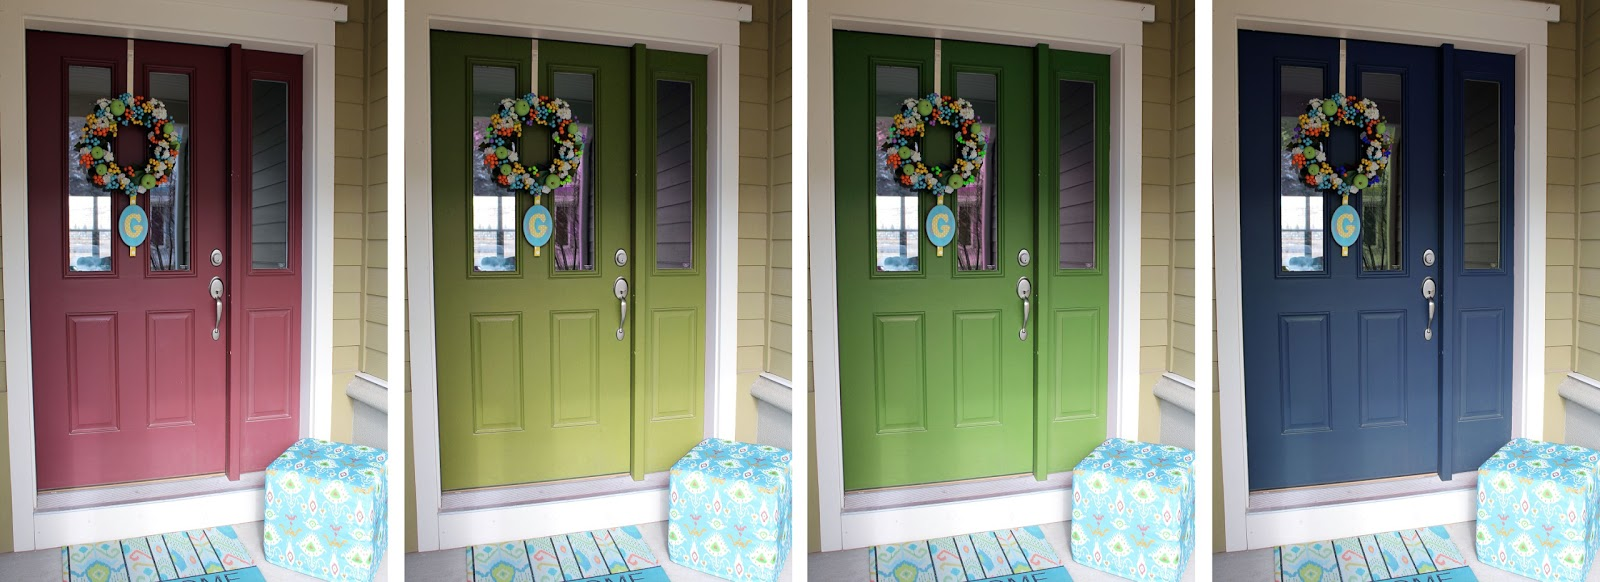 Changing The Color Of Front Door